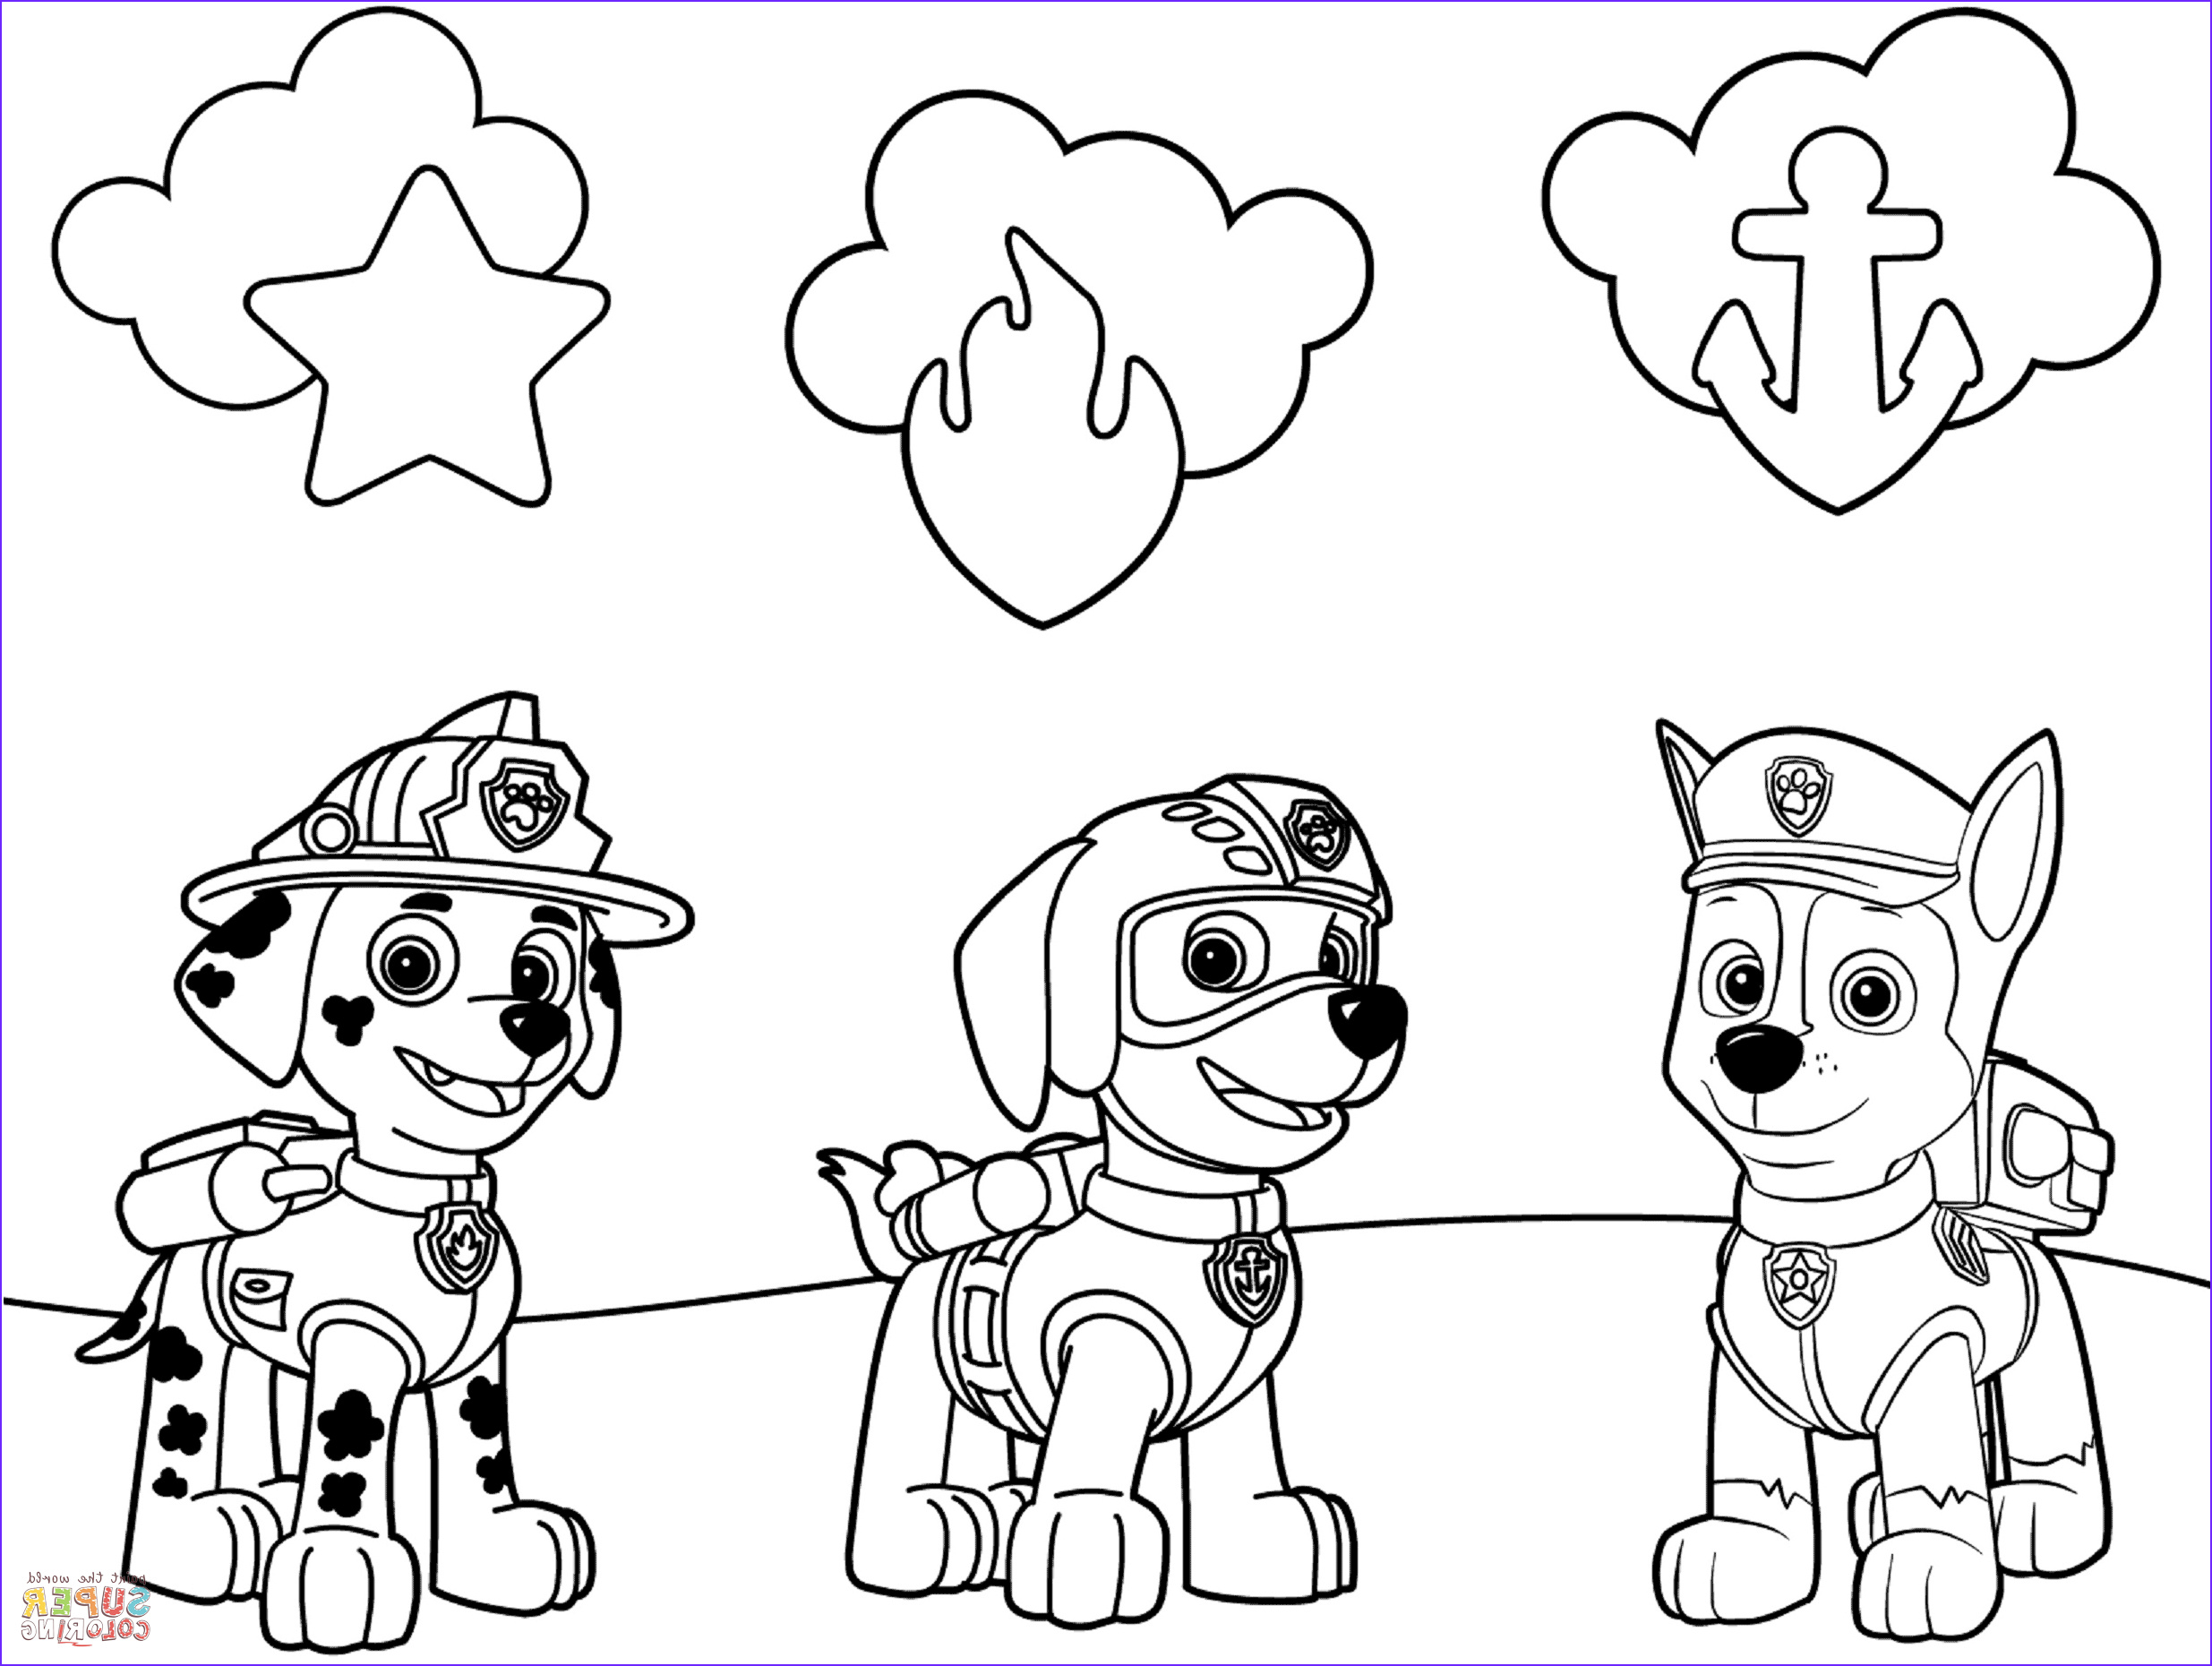 Free Paw Patrol Coloring Pages Beautiful Photography Paw Patrol Badges Coloring Page